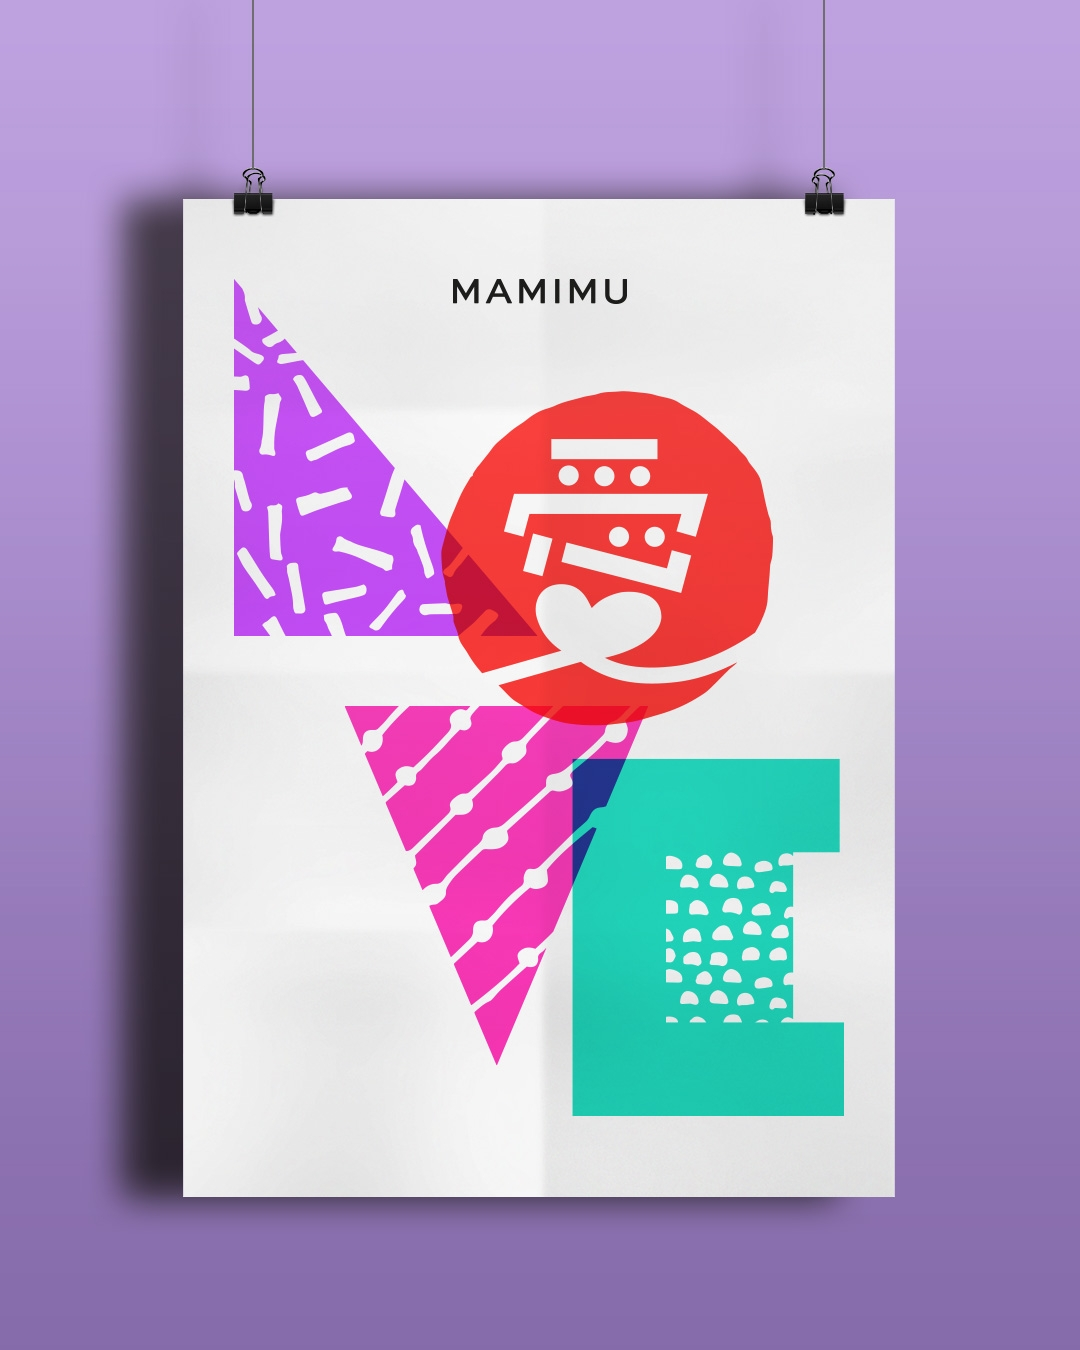 Visual language LOVE exploring  - mamimutokyo | ello